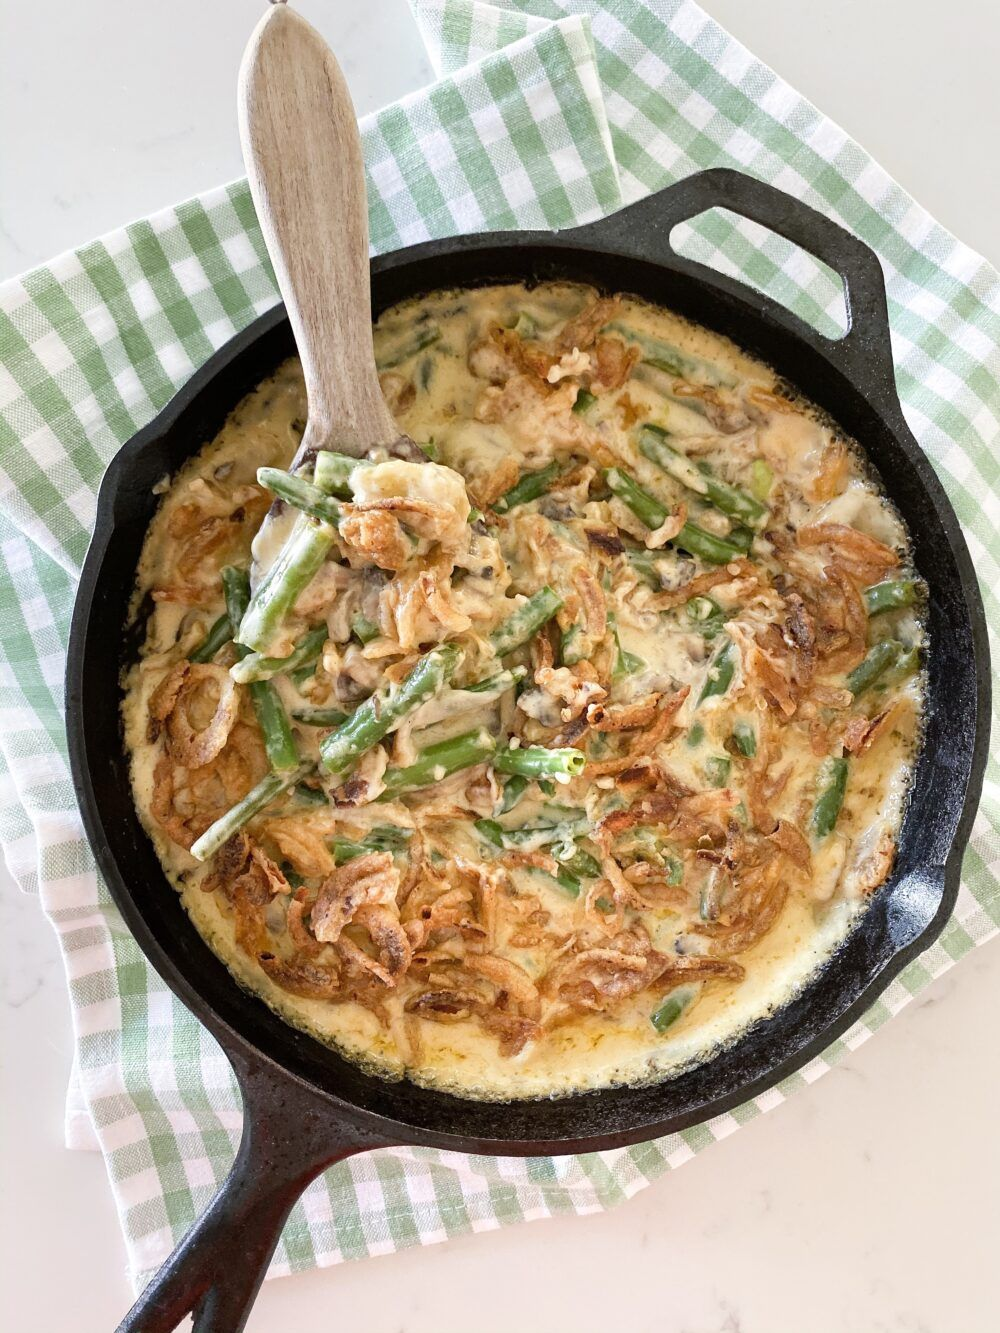 Best Cheesy Green Bean Casserole #thanksgivingdinnertable Best Cheesy Green Bean Casserole #greenbeancasserole